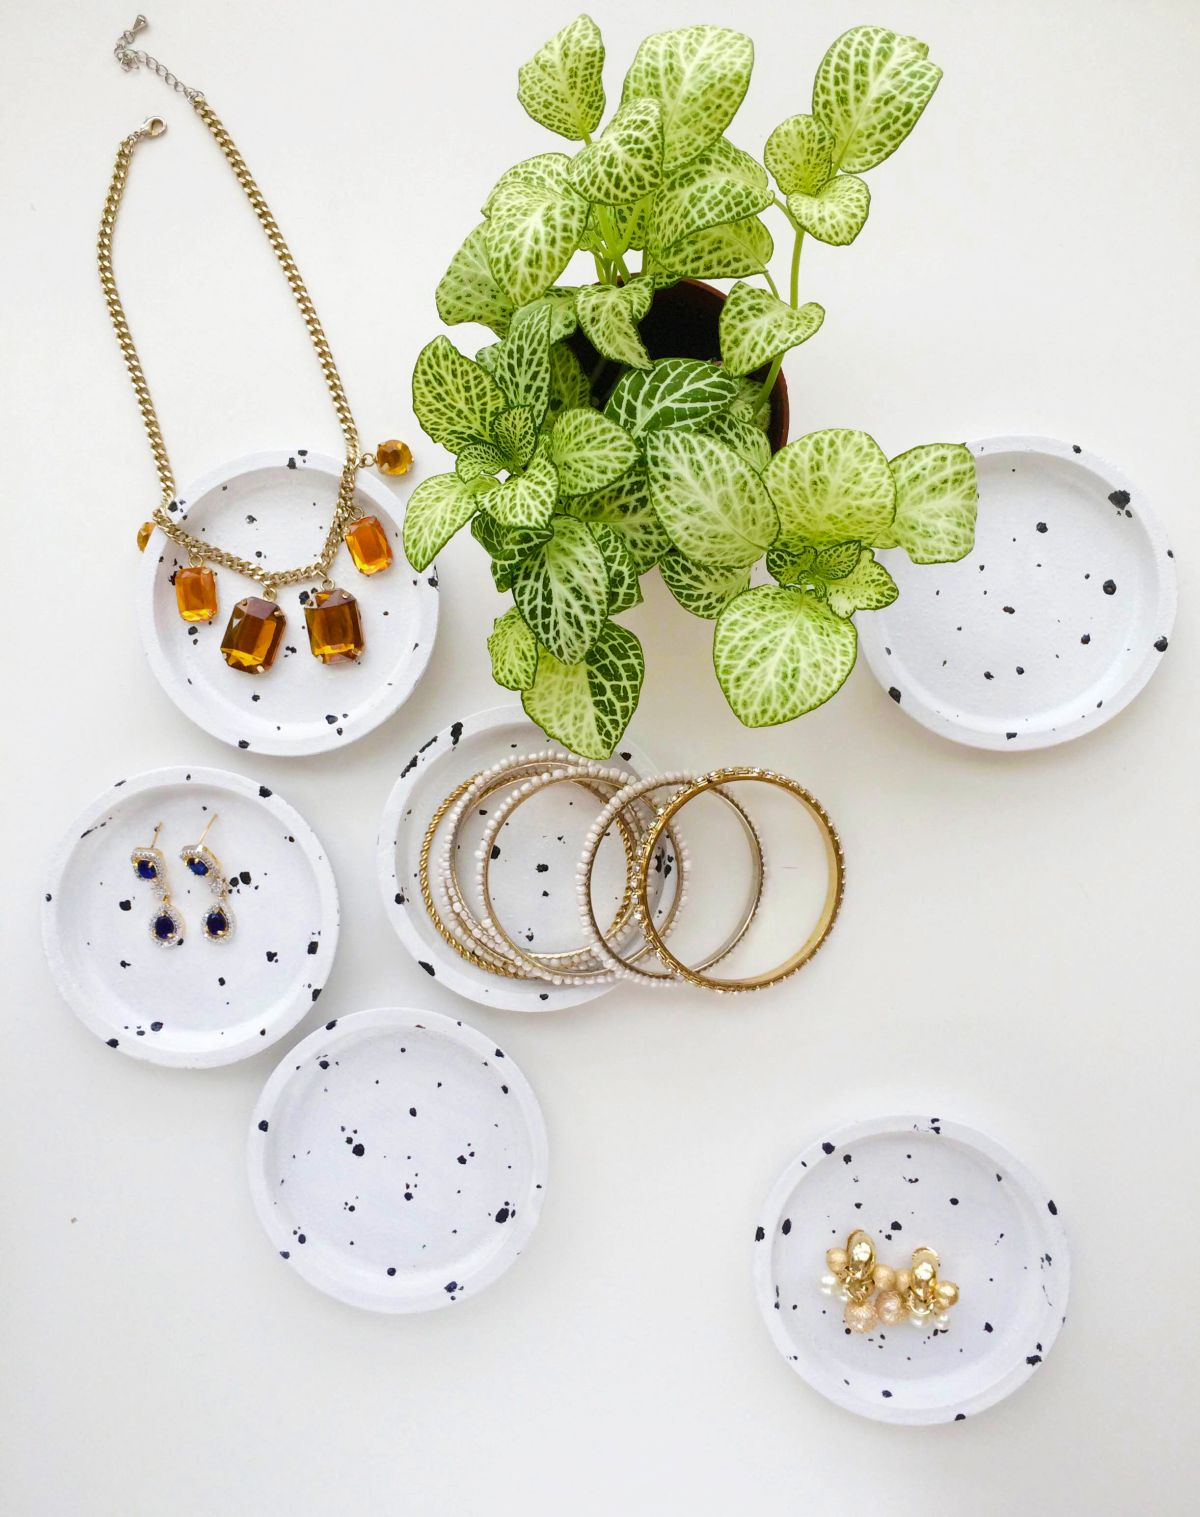 Modern Speckled Jewelry Dish from Coasters Materials